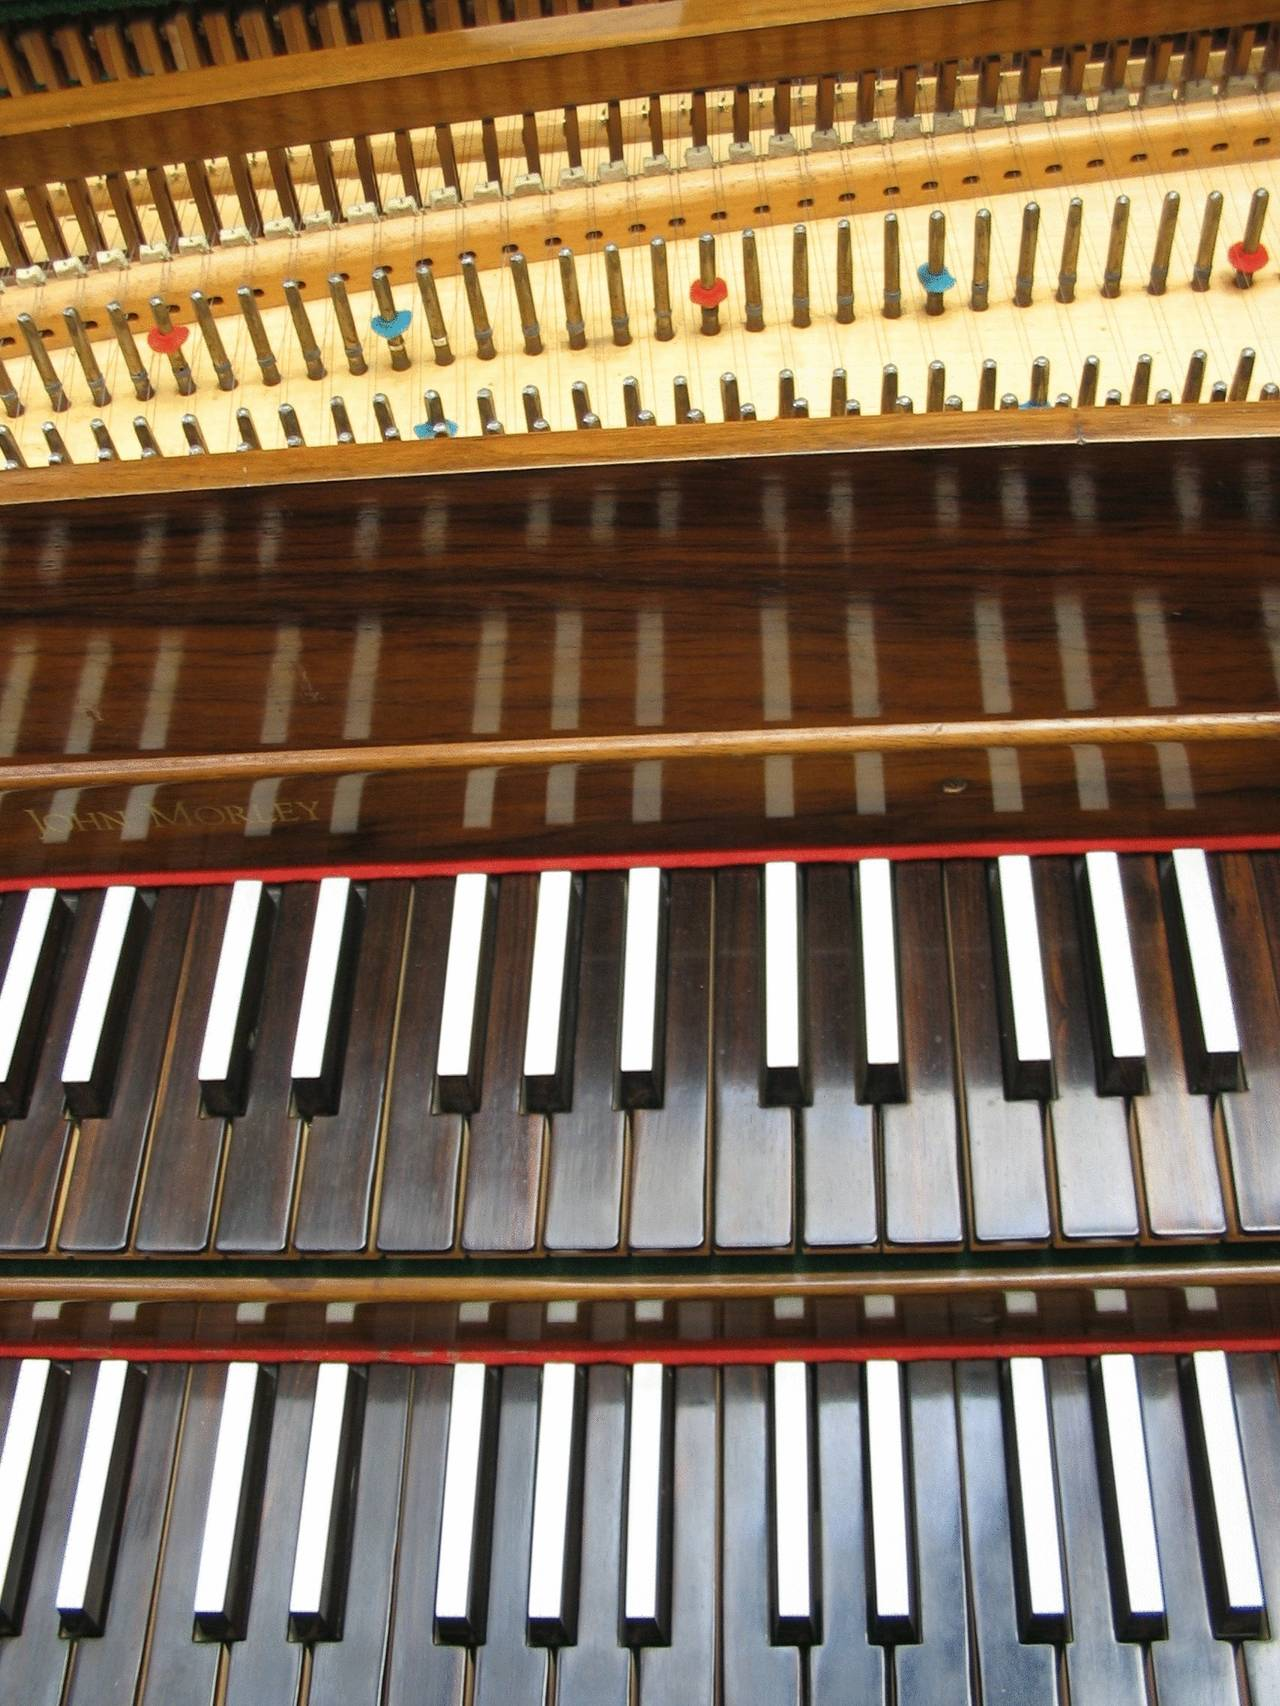 John Morley Harpsichord, English Double Manual For Sale at ...